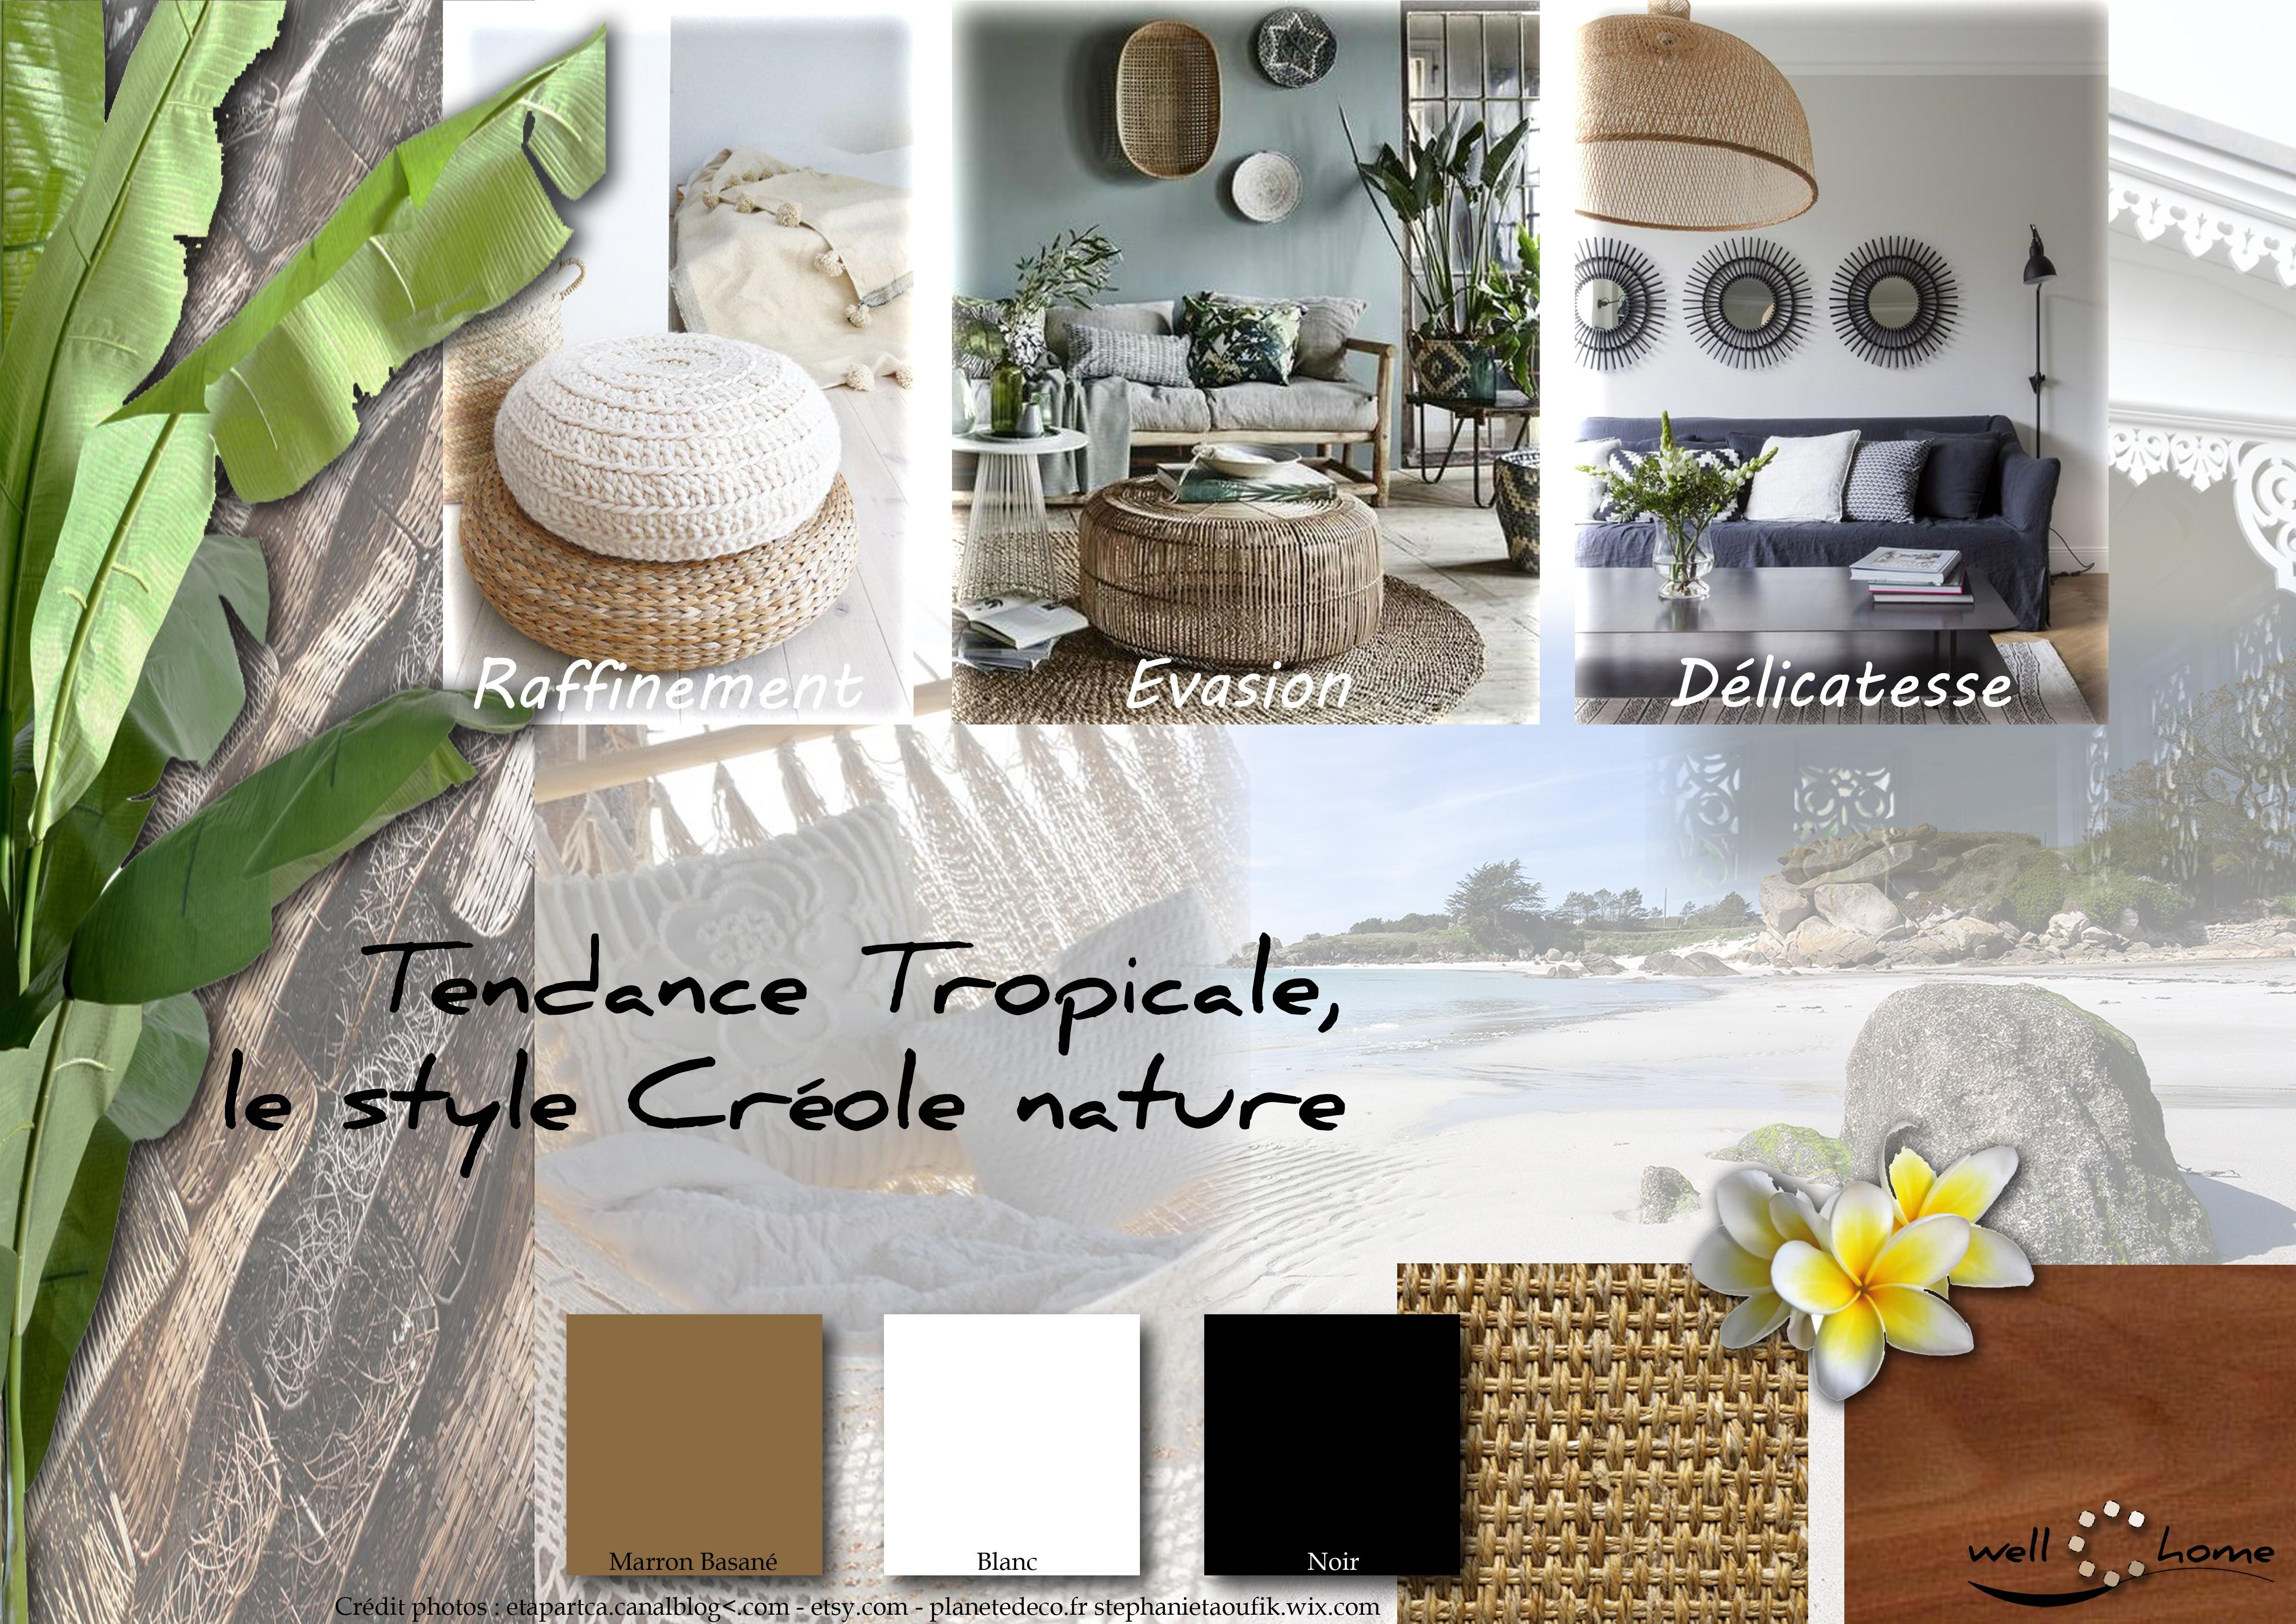 moodboard - déco, planche d'ambiance, tendance tropicale, style